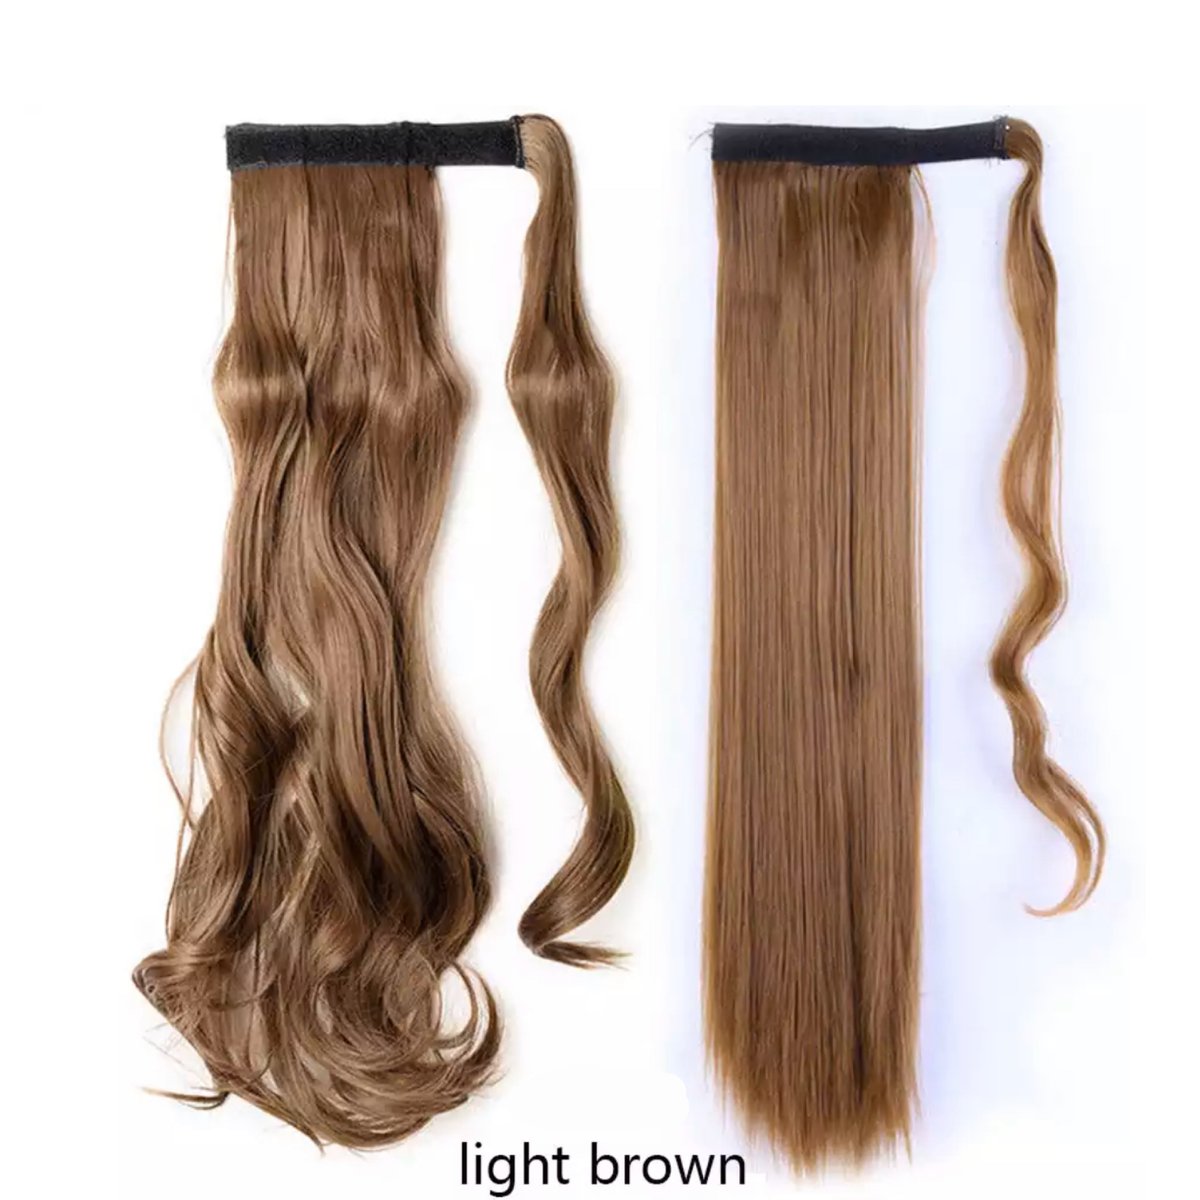 Light Brown Ponytail Hair Extension - lexinoelbeauty.com